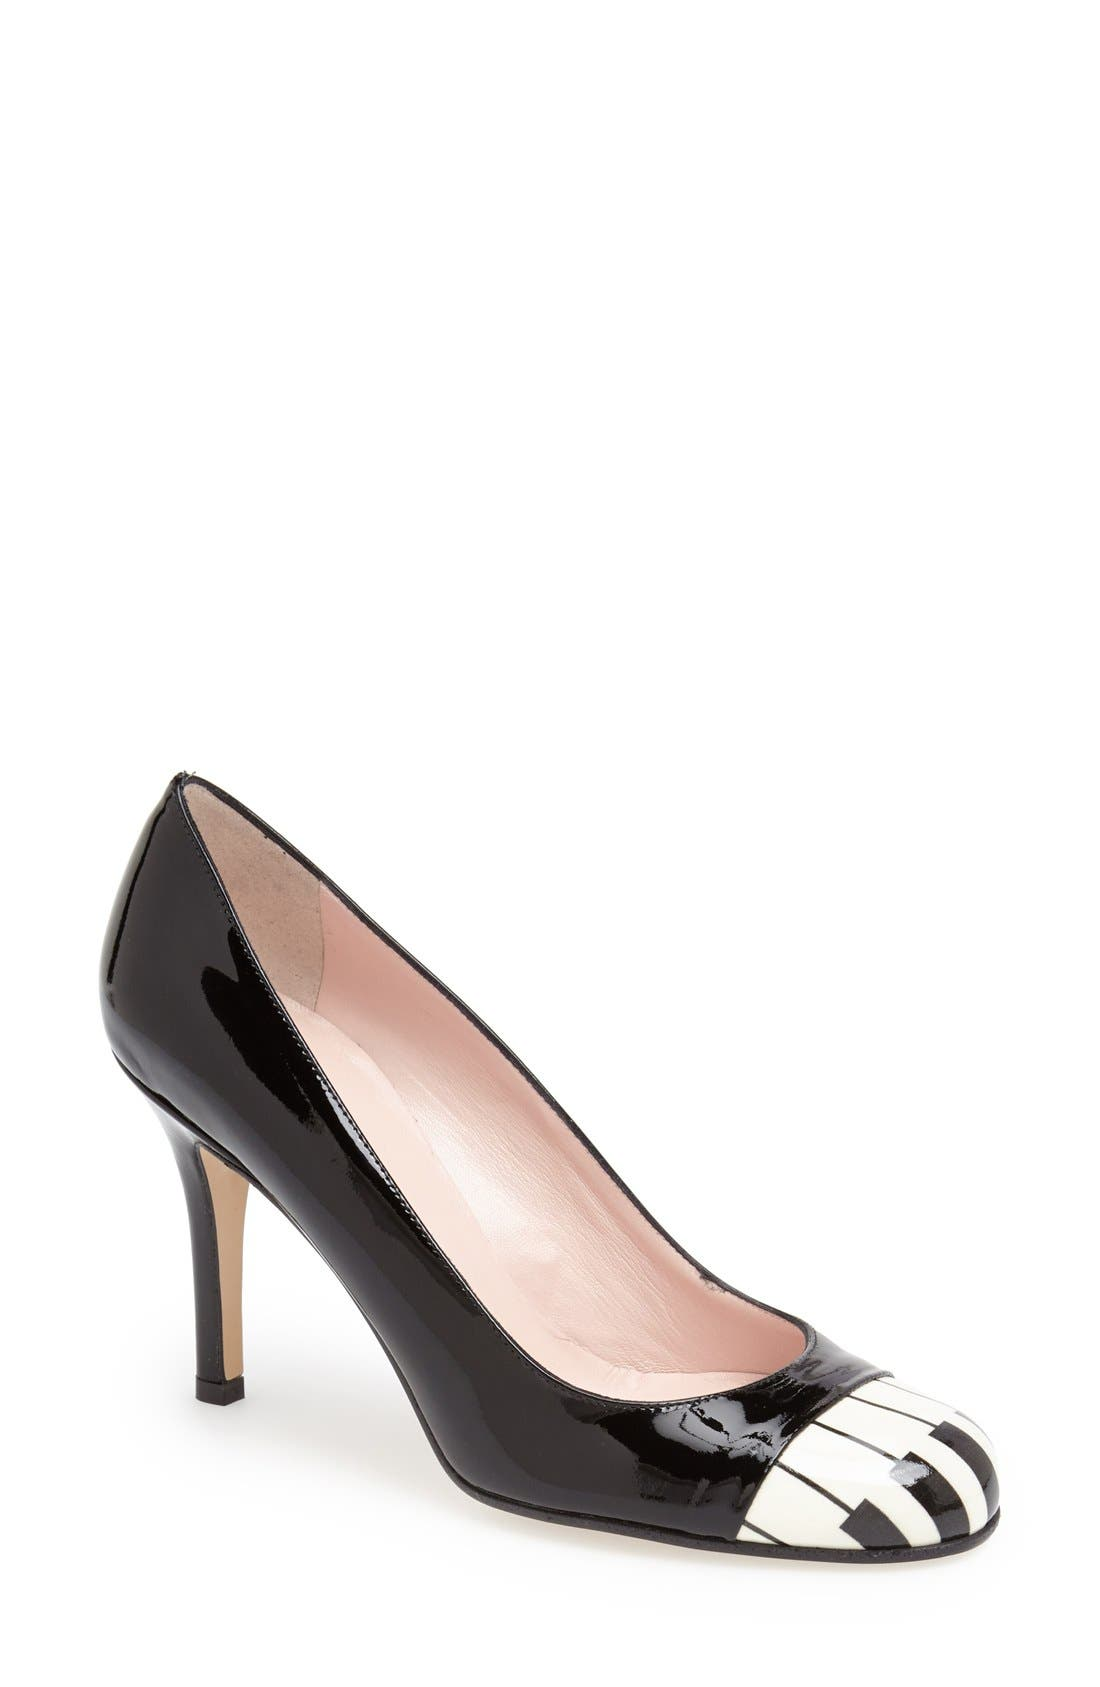 Main Image - kate spade new york 'keys' pump (Women)